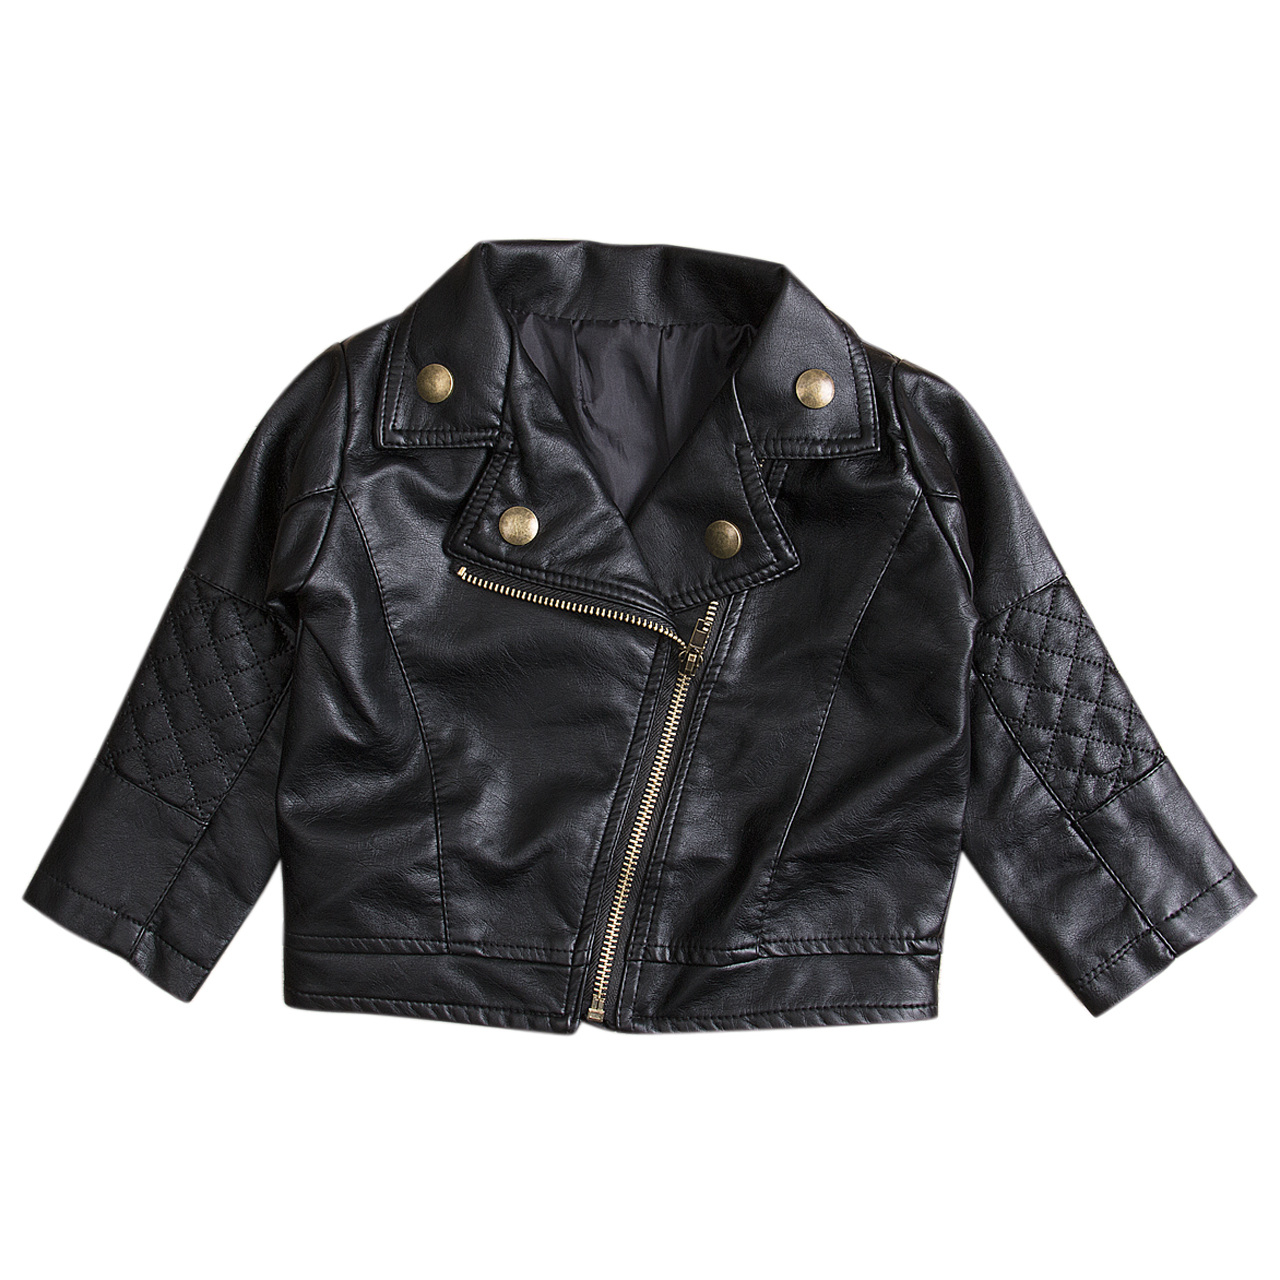 Kids Faux Leather Jacket Boys Girls Trendy Coat Toddler Fashion Motor Jacket